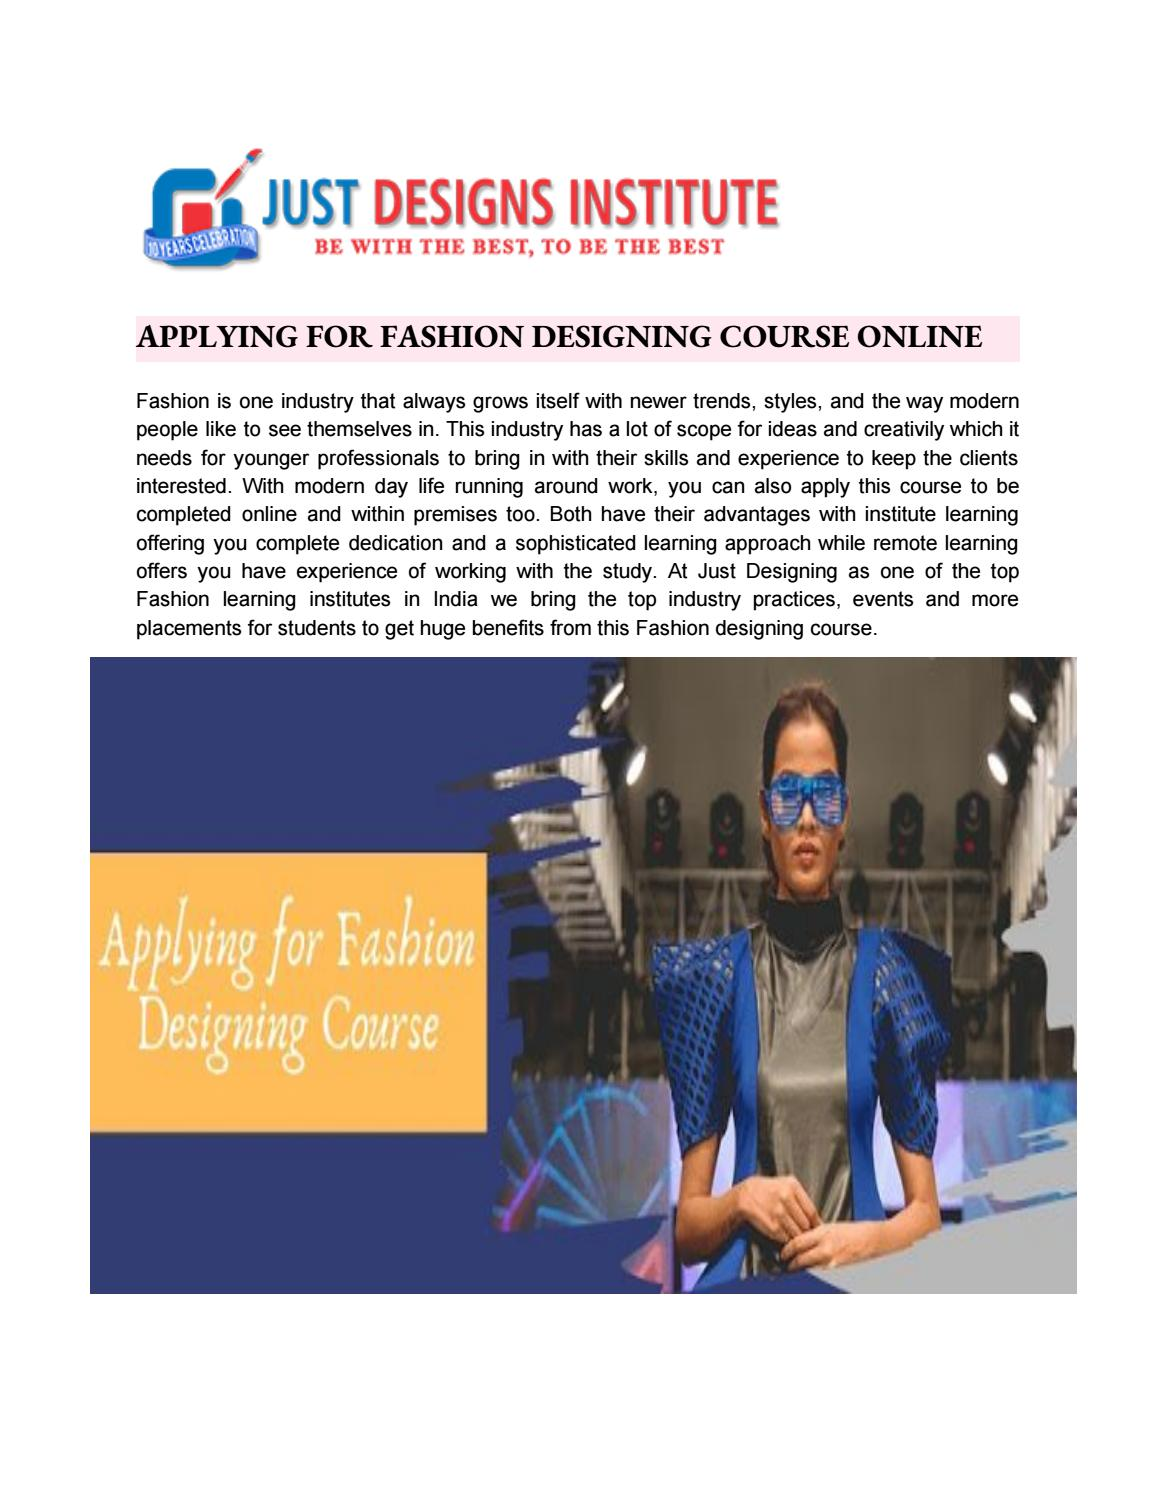 How To Apply For Fashion Designing Course Online By Just Desgin Issuu